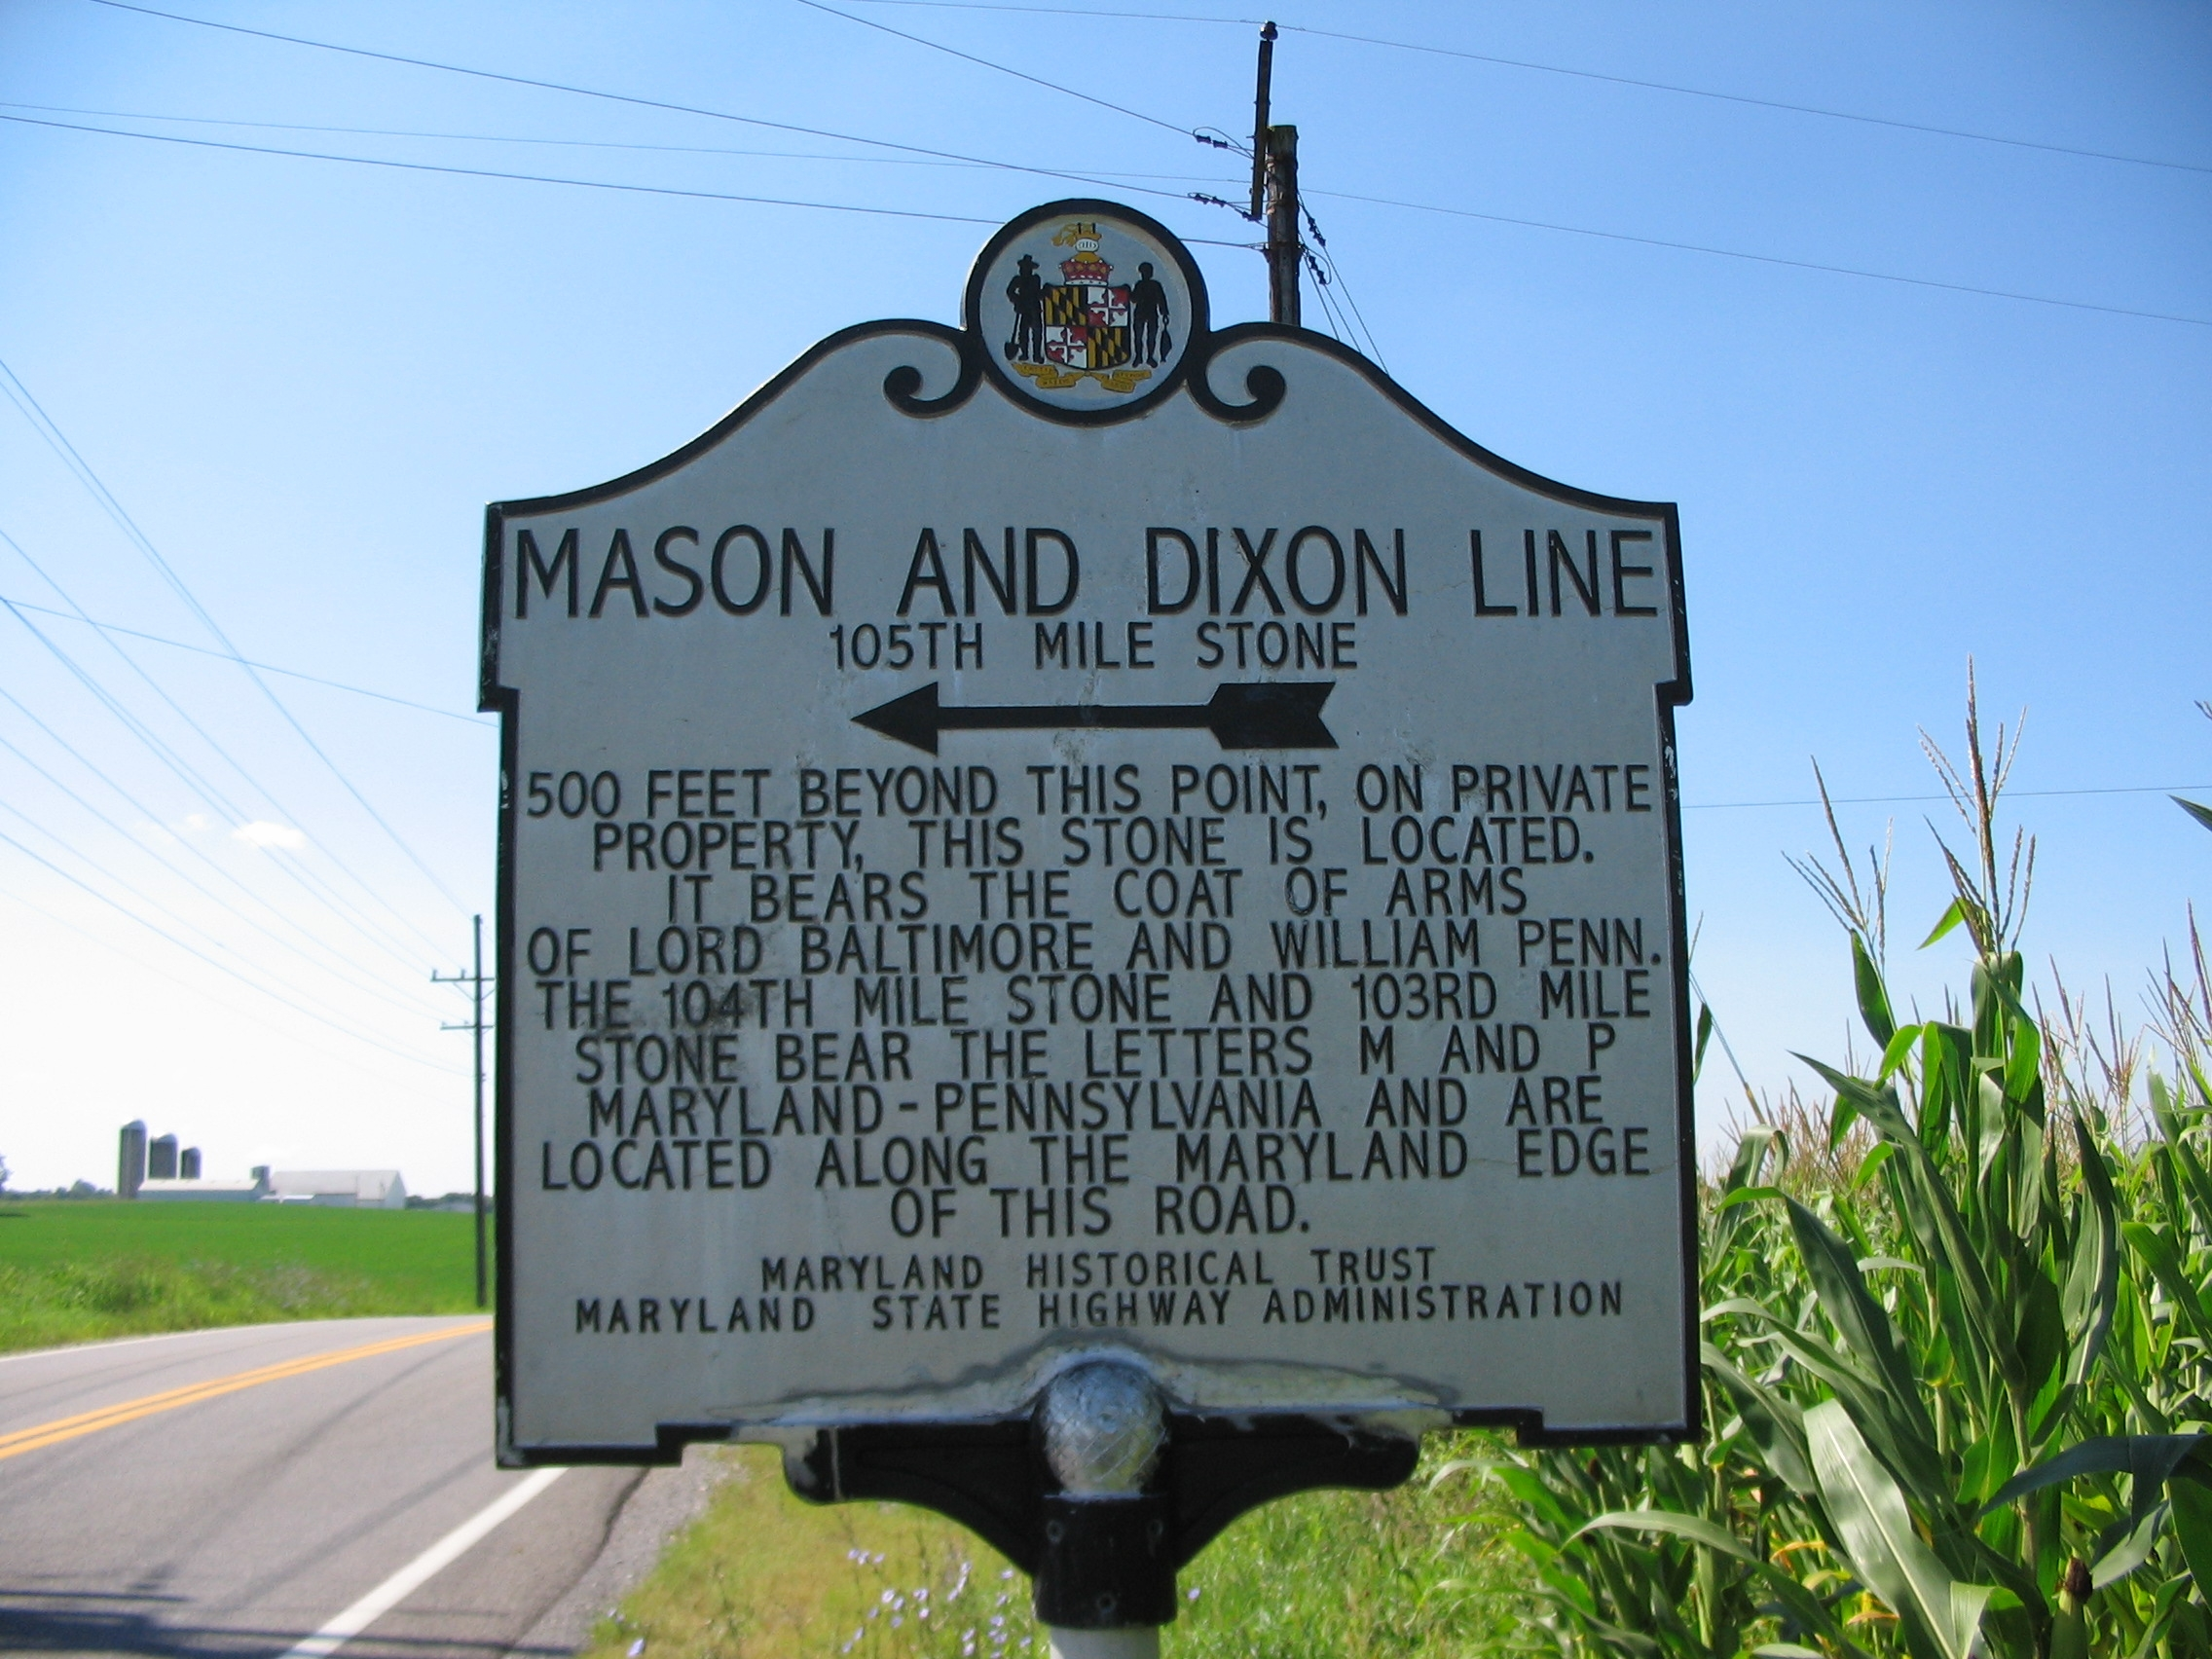 The Mason-Dixon Line, first employed to resolve a bitter land dispute, became a symbol of sectionalism and somewhat a notional division between the Northern and Southern states